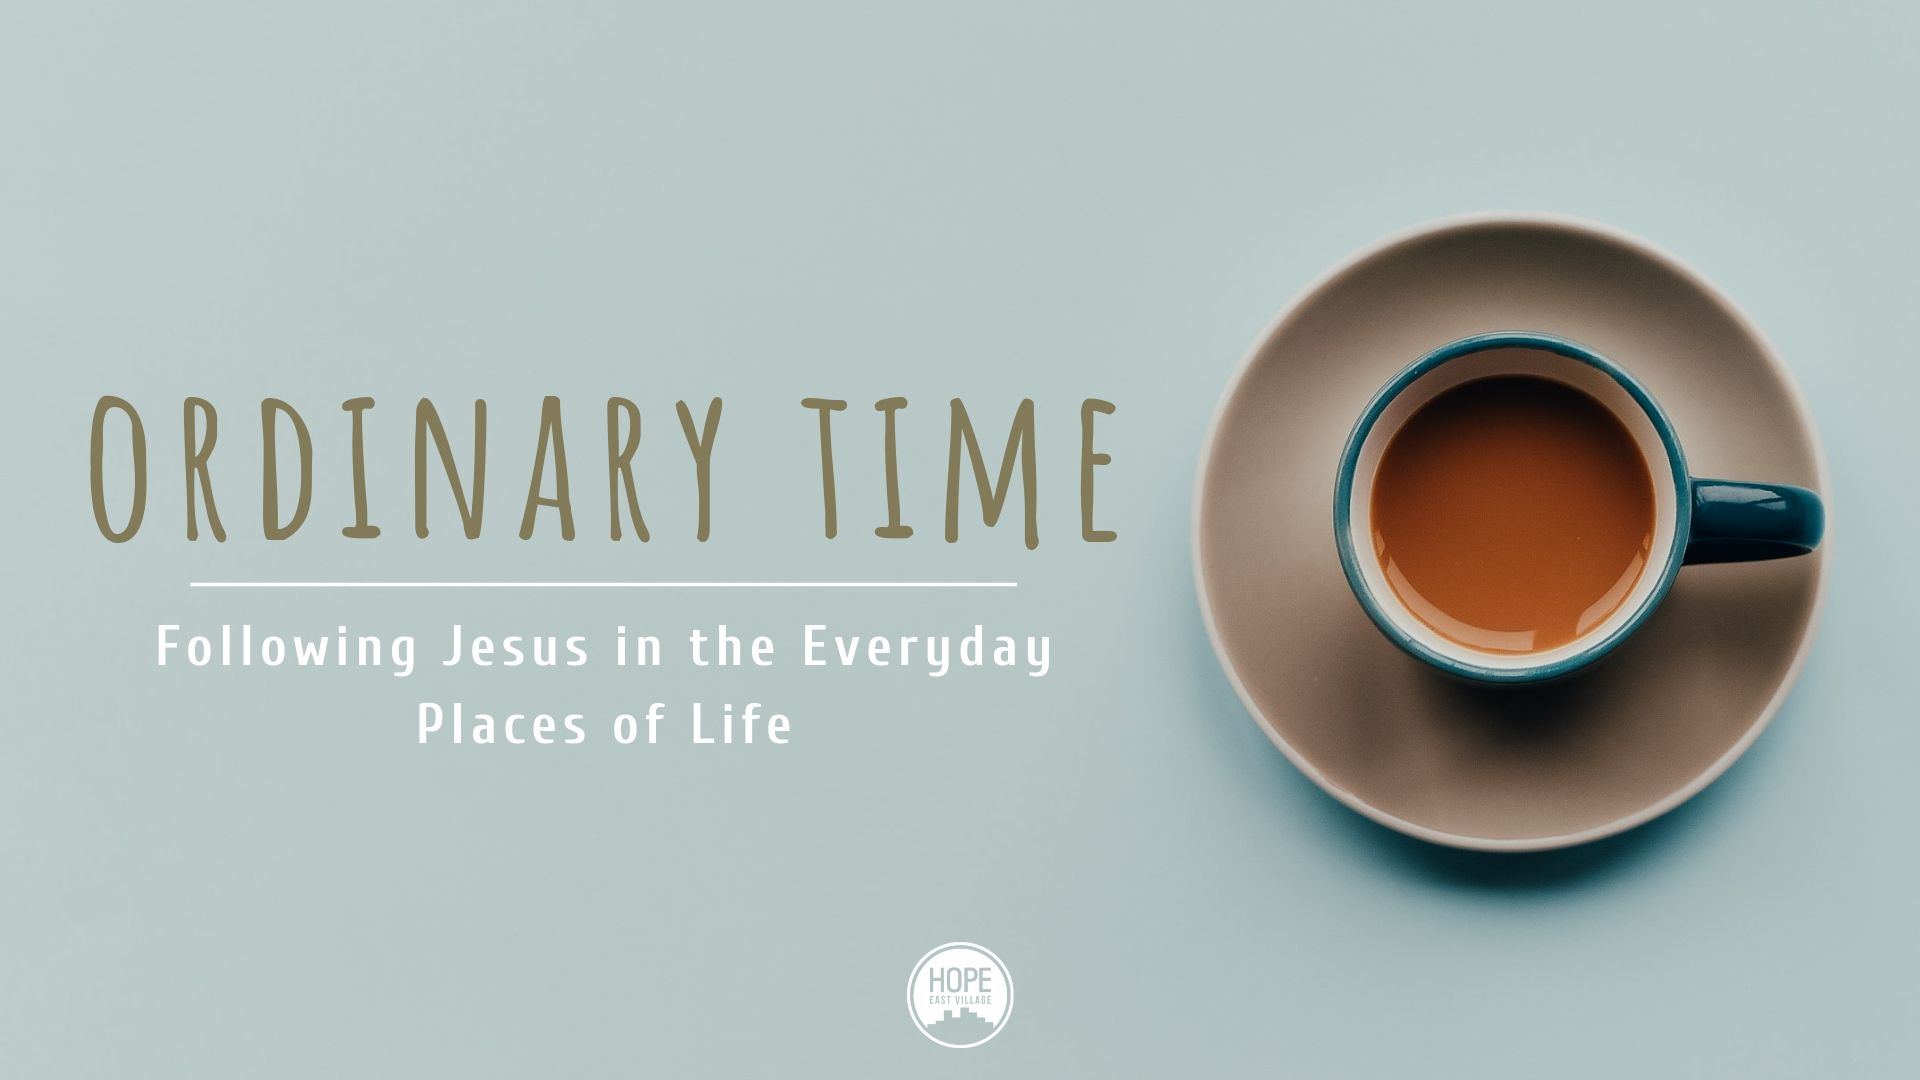 ORDINARY TIME: FOLLOWING JESUS IN THE EVERYDAY PLACES OF LIFE - Most of life is lived in the mundane, but often when we think about following Jesus the spectacular comes to mind: radical acts of service, miracles, healings, fantastic worship services. However, when our perception of following Jesus is limited to the radical and spectacular, we can end up living with our confession of Jesus as Lord having little to no impact on our day to day lives. Yet, there is so much of God to see, encounter, and experience in the small and seemingly ordinary places of life! How do I experience and encounter the presence of God in the mundane places of my life? What does it look like to experience the transformation of the Holy Spirit in the everyday? We explore questions such as these, and more, in this sermon series. The goal of this series to help us begin to see that day to day life does not have to be drudgery, but it is meant to be the very Temple of God. The whole earth is filled with God's glory---even the subway ride to work, my cubicle, and this ordinary bowl of cereal in front of me.